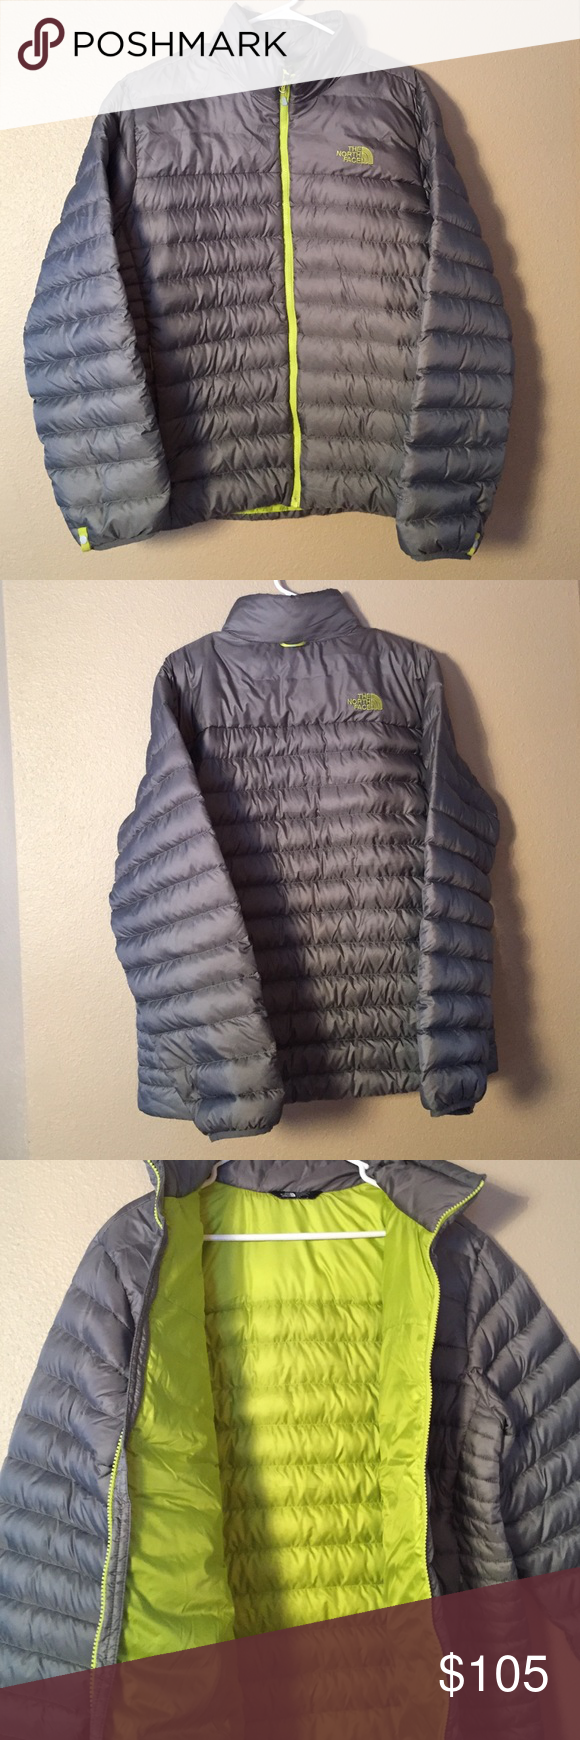 NORTHFACE lowest sale!🚨 size:L gently worn!! Mens gray NORTHFACE size large light weight puffer coat! Green zipper and inside. Shell is 100% polyester along with lining. Two zip up side pockets. See pictures for all details! North Face Jackets & Coats Puffers